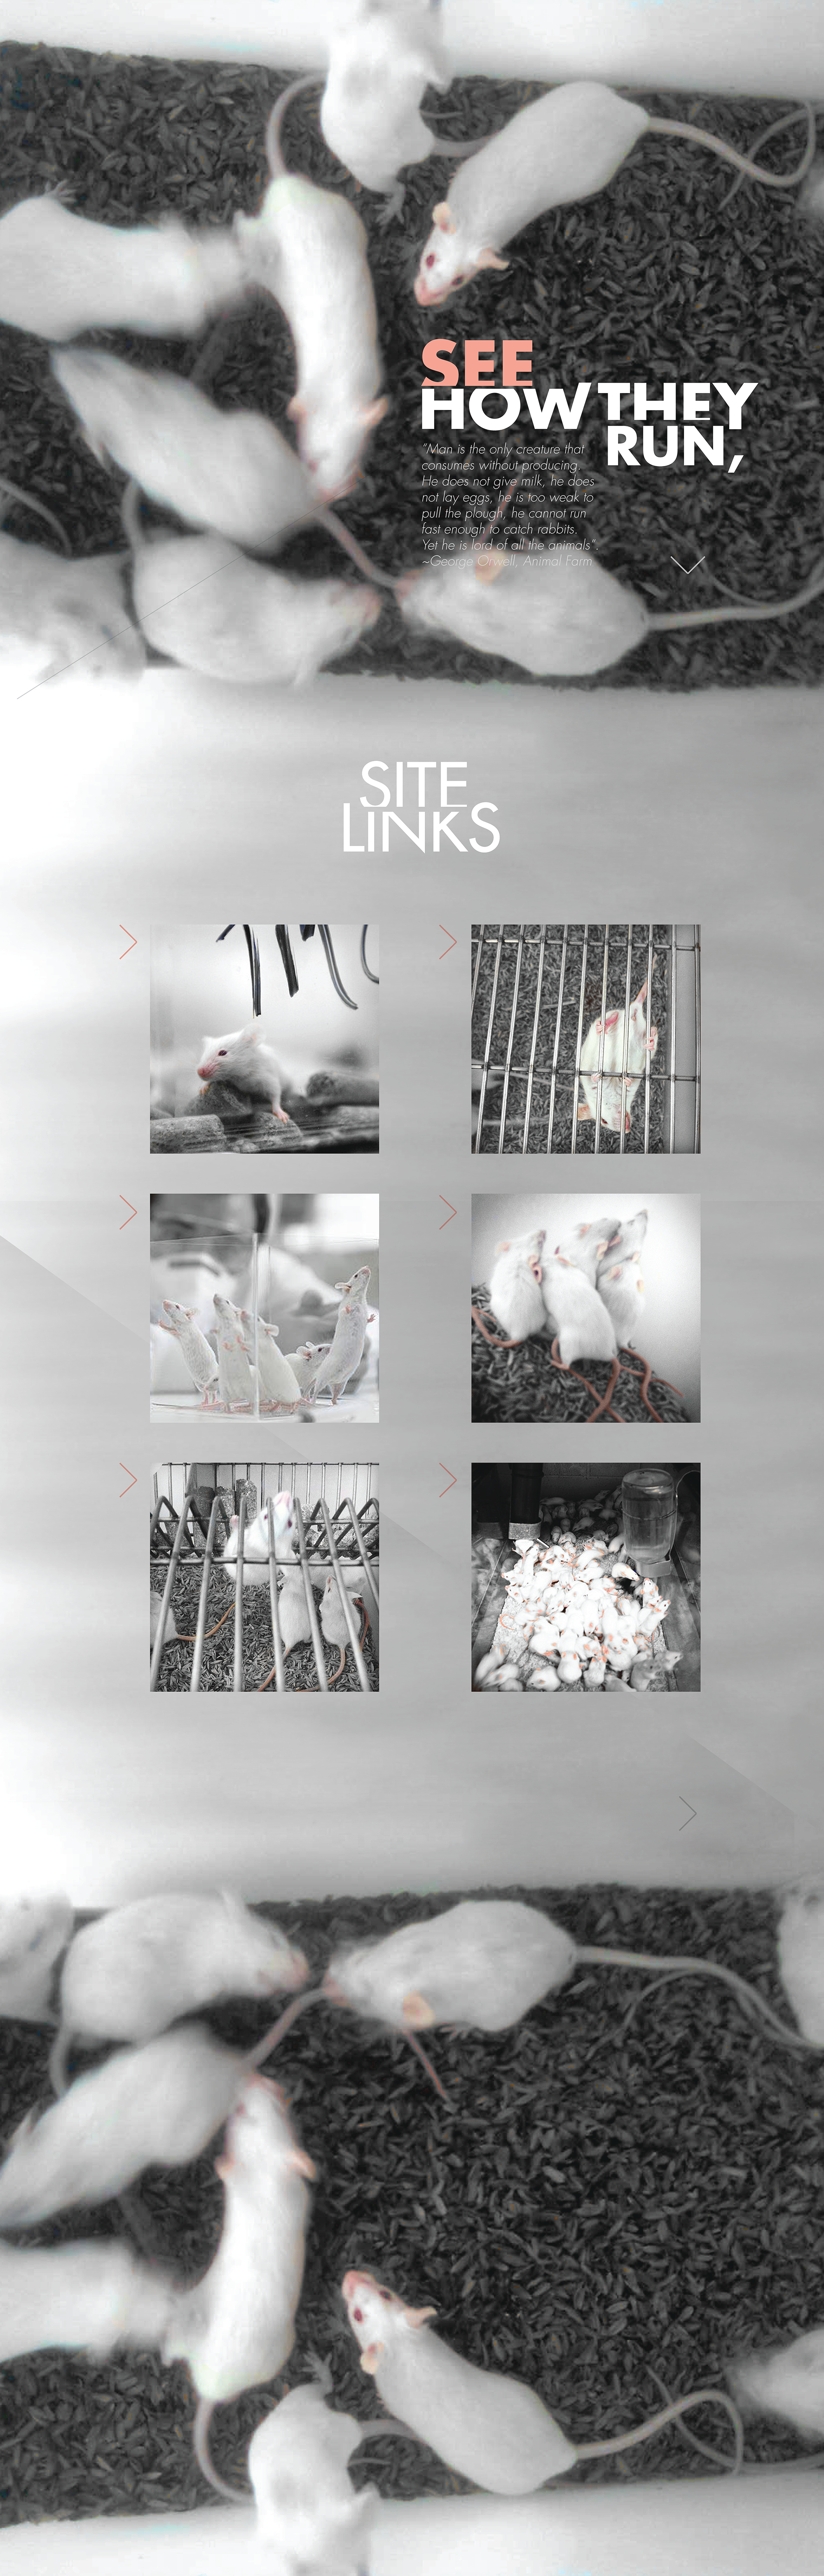 3 Blind Mice - Squarespace_Covers-11.png